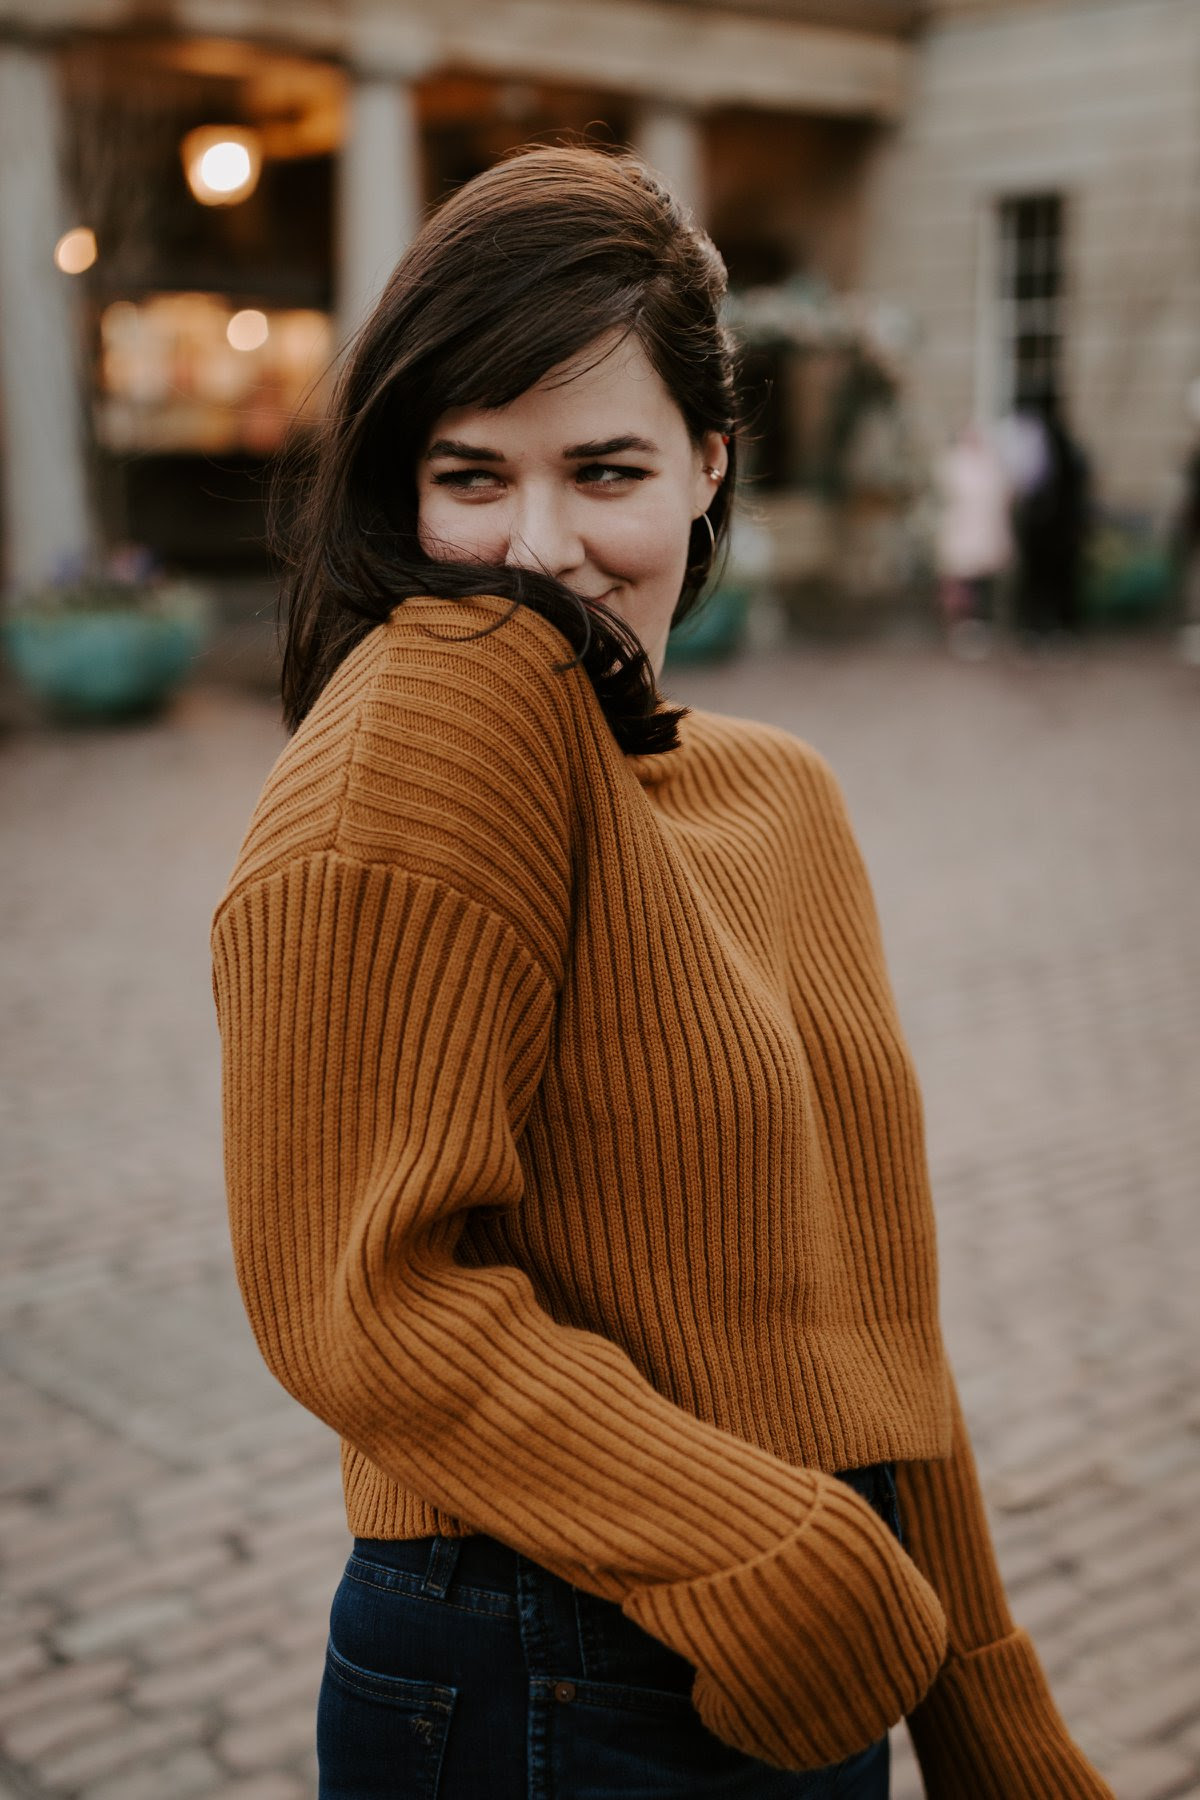 Mackenzie Taylor being incredibly cute and coy in an oversized sweater that only she can pull off